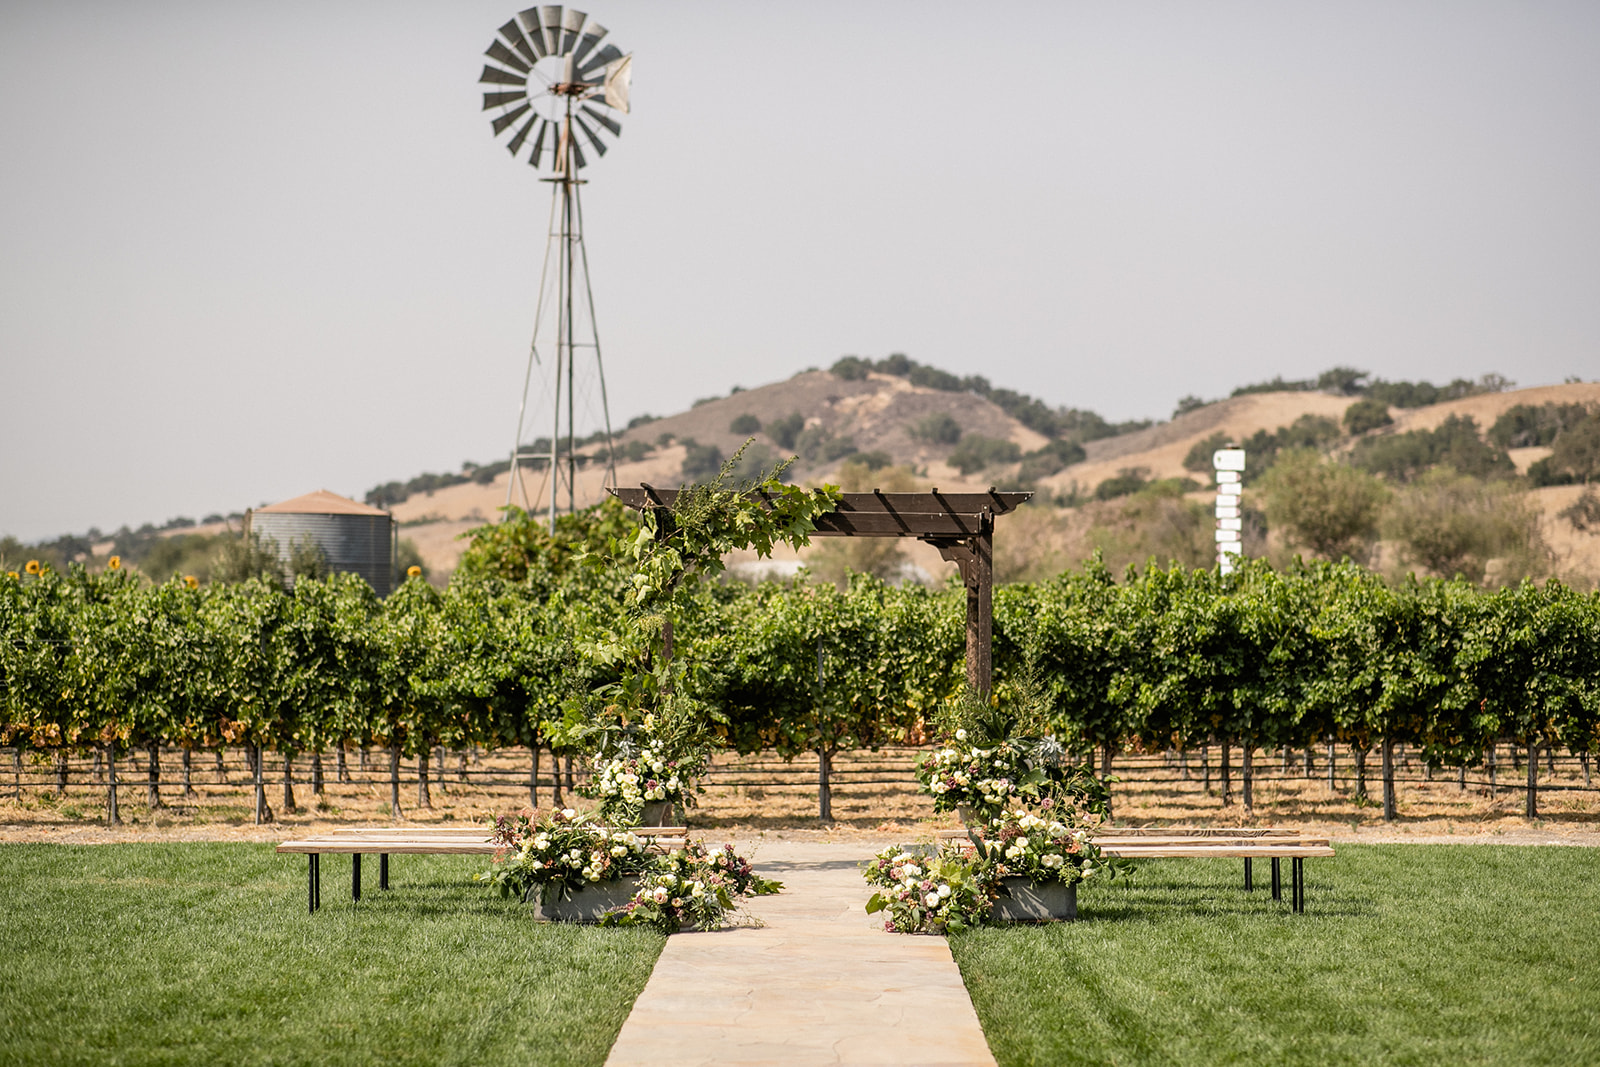 Pergola with windmill behind